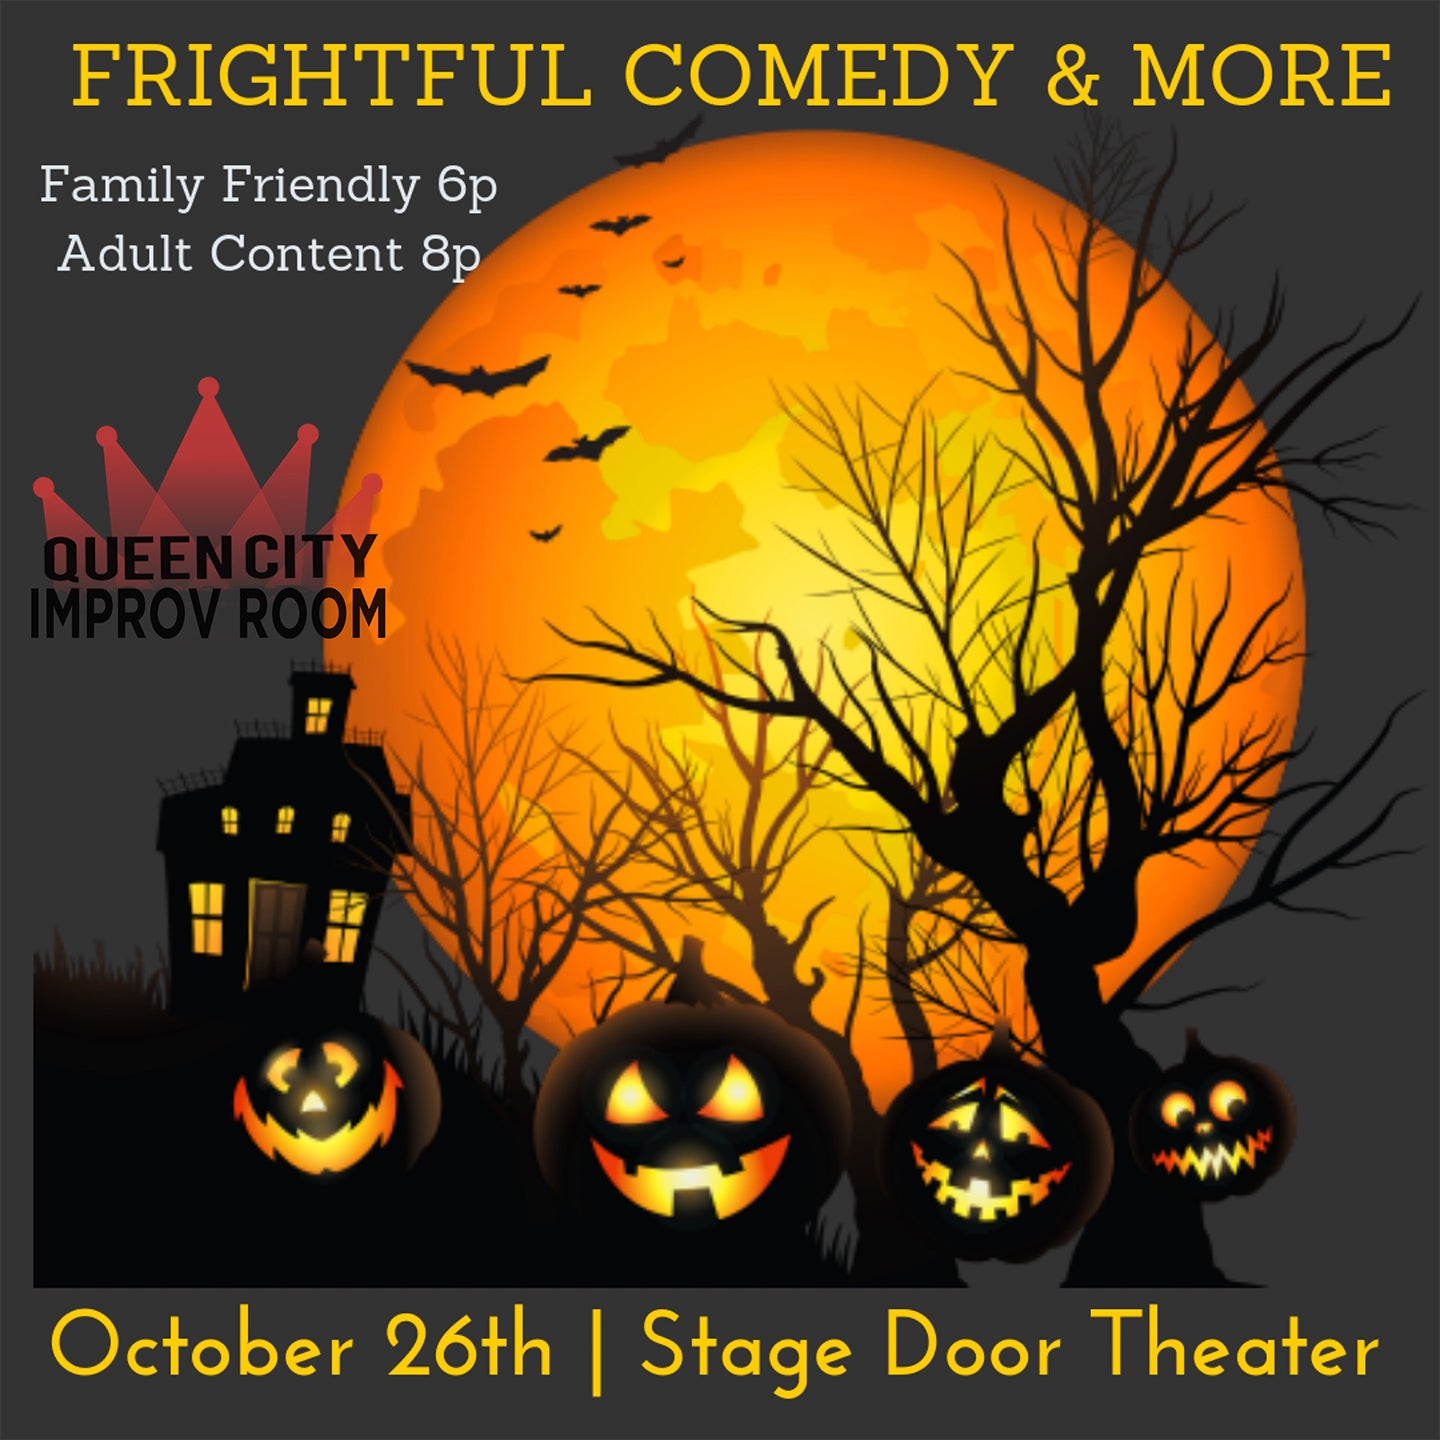 Queen City Improv Room: Family Friendly Halloween